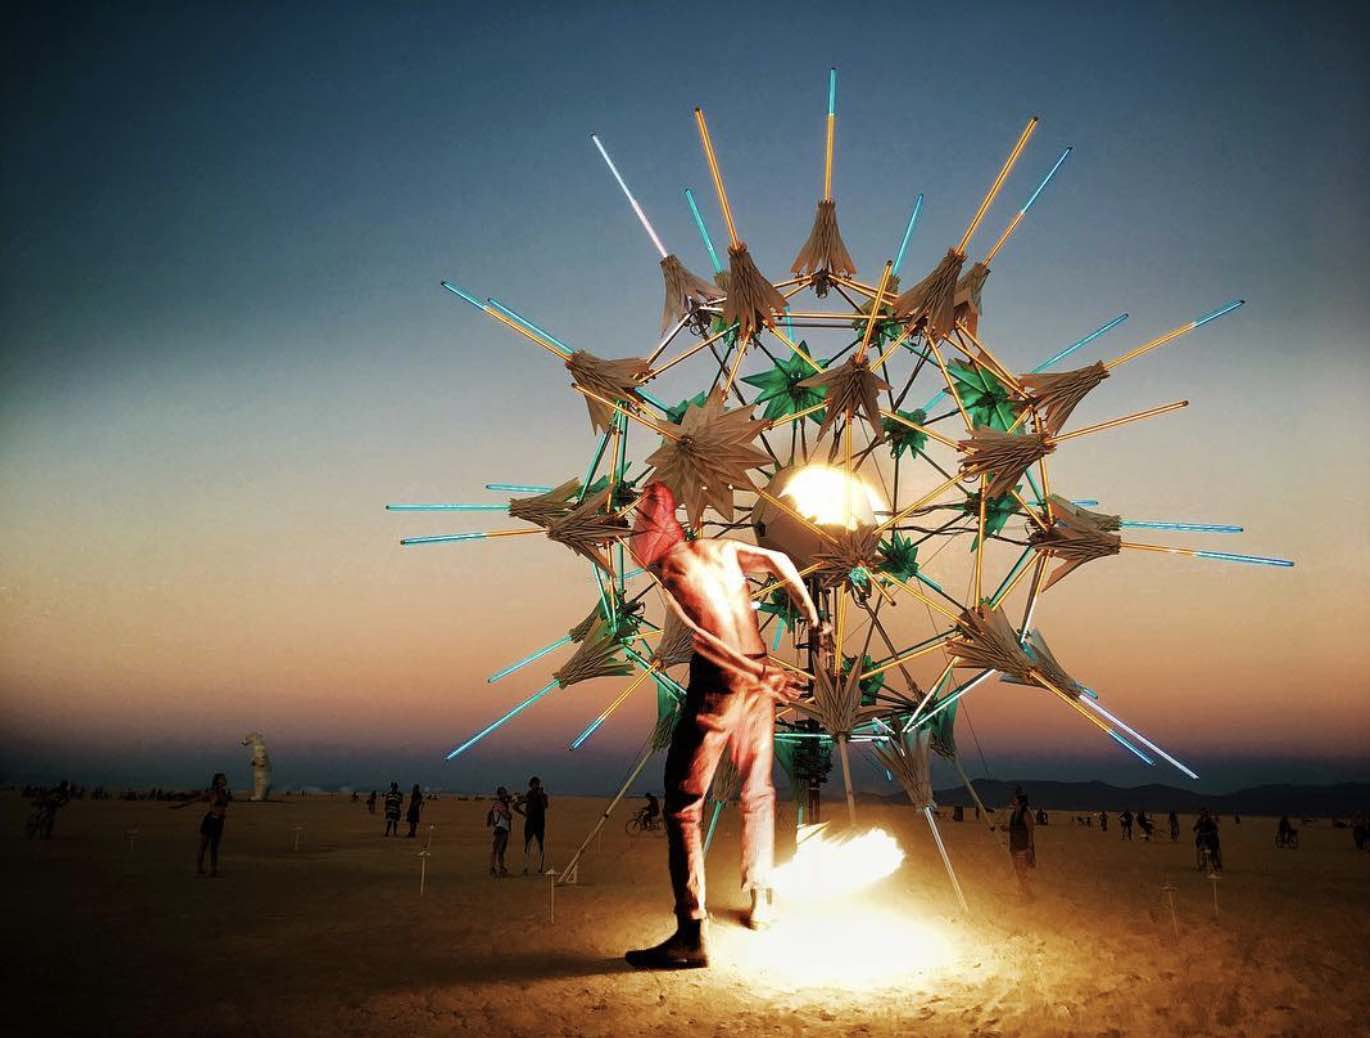 Burning Man 2018 - Radia Lumia - Photo via IG Follow @fuego_sol